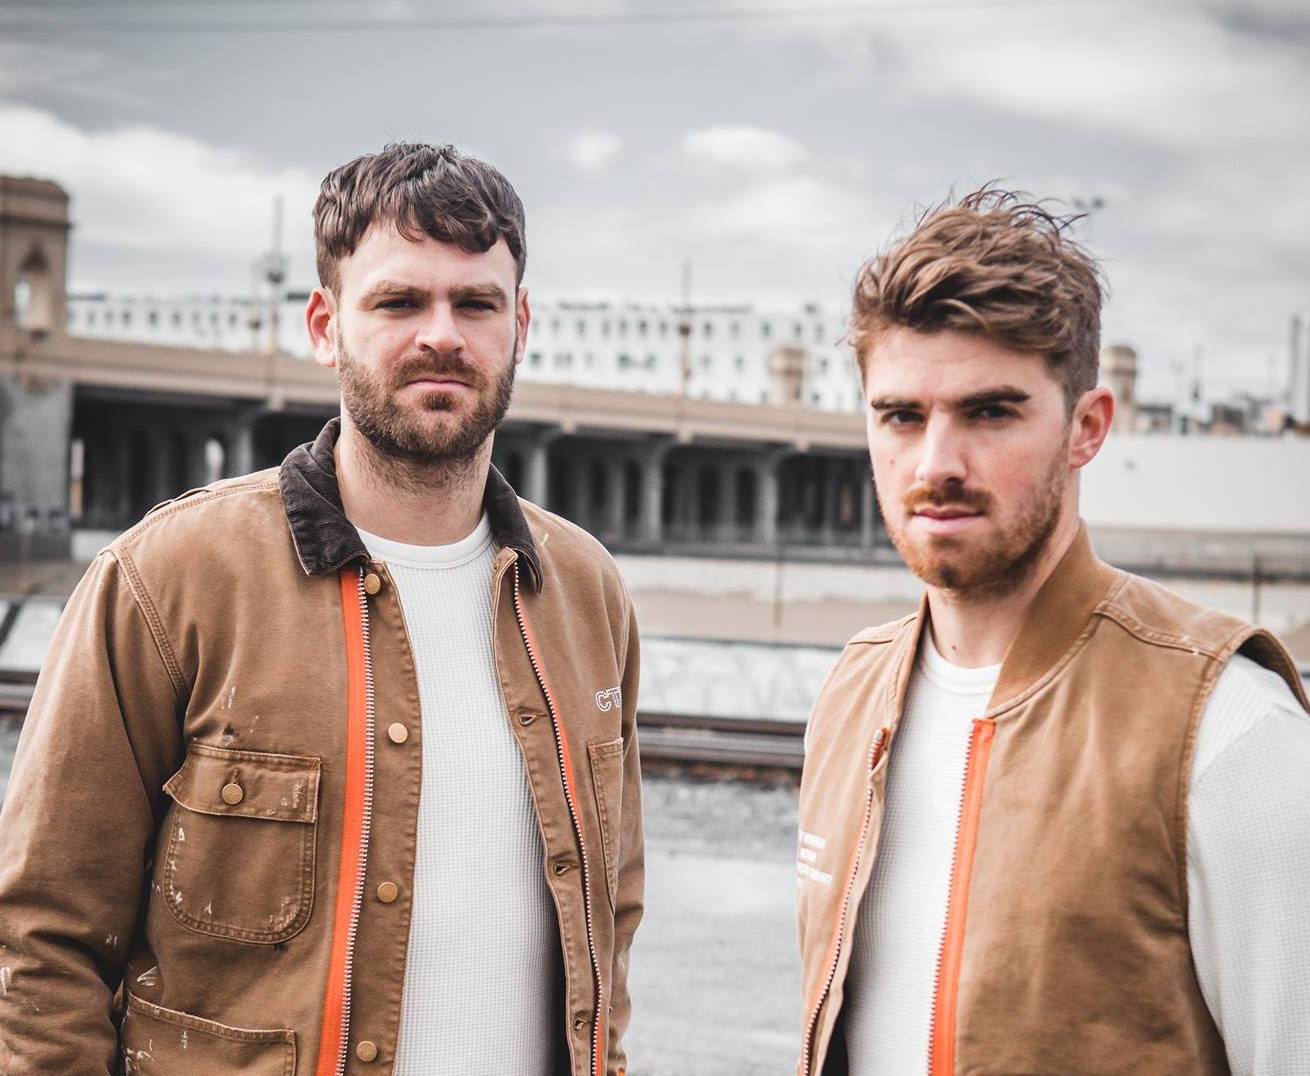 The Chainsmokers Led VC Fund Invests in Bitcoin Self-Custody Solutions